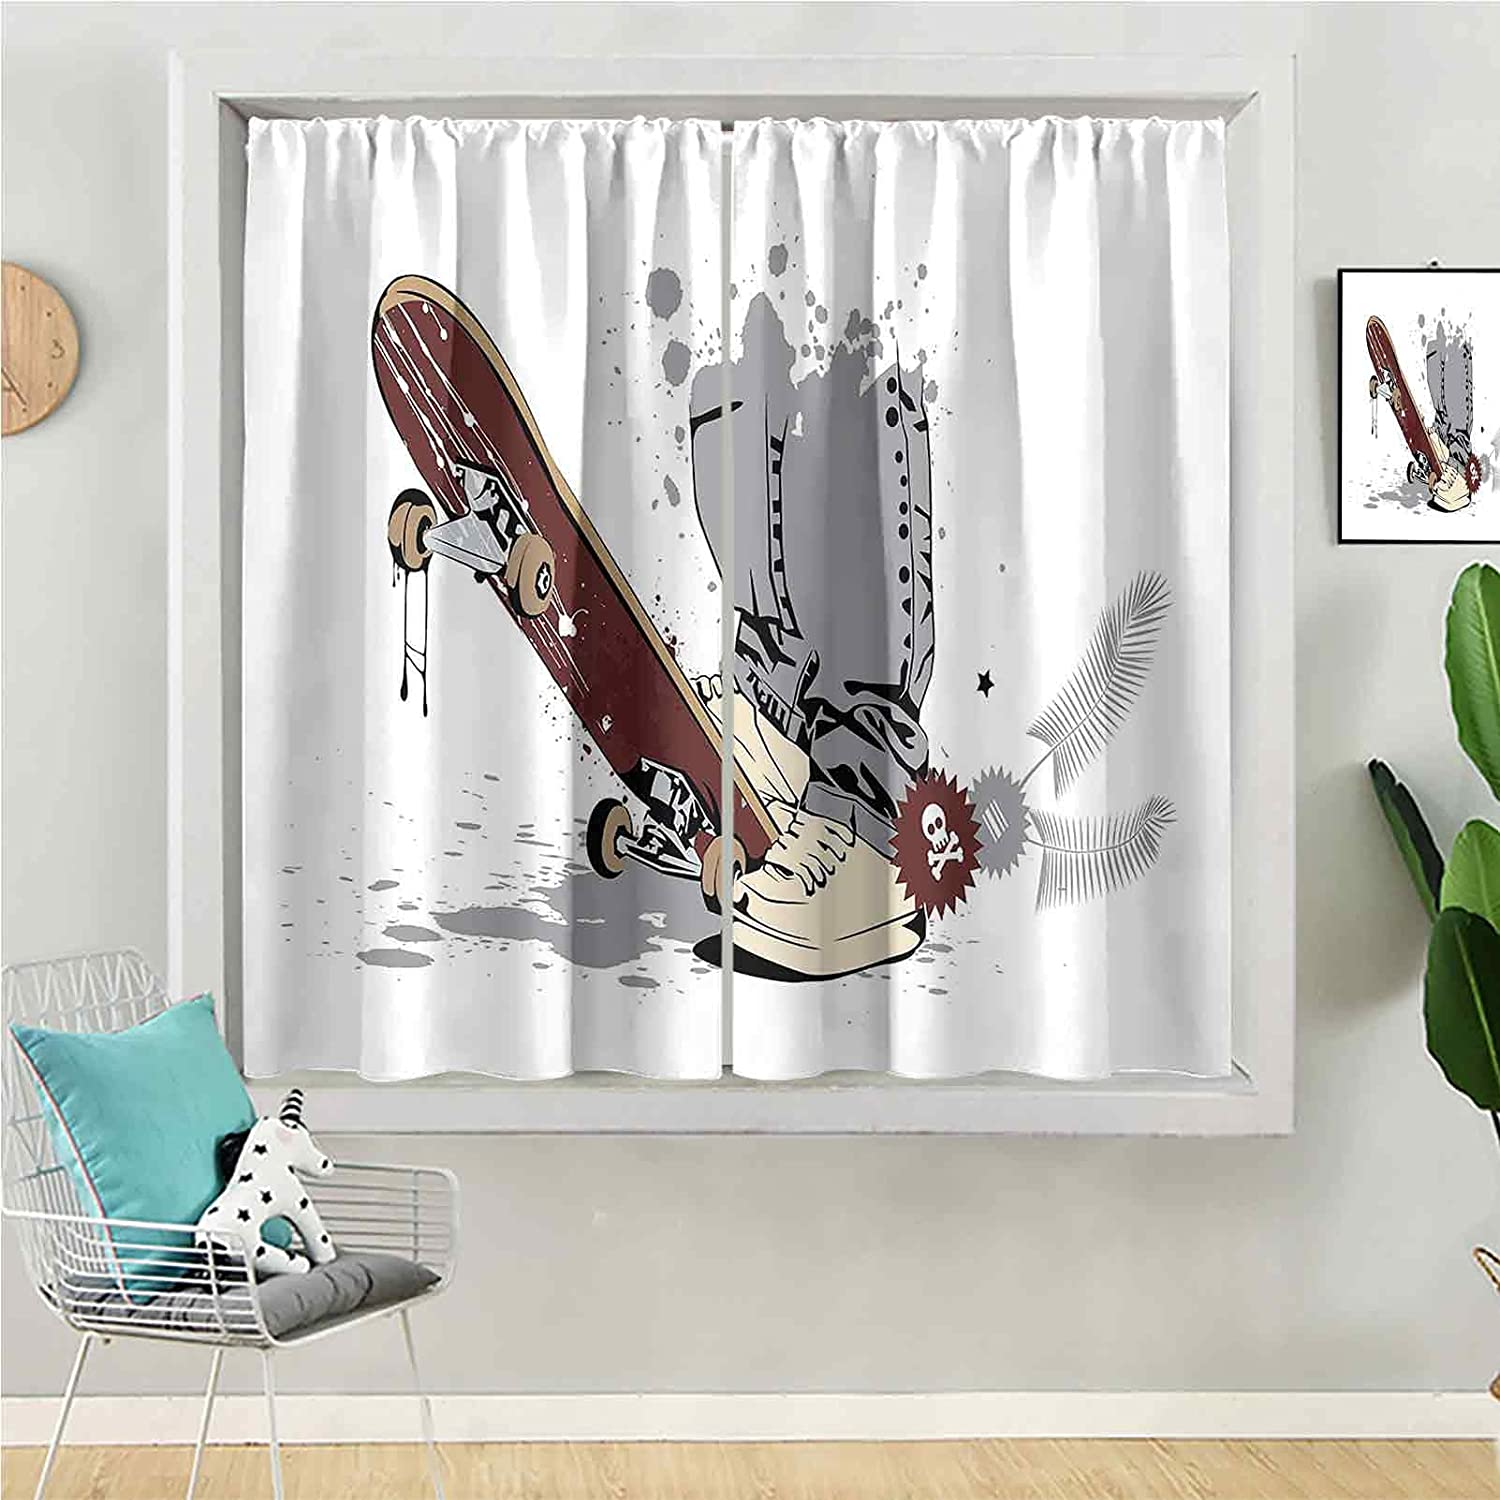 Blackout Max 71% OFF Curtain 84 Popularity inches Long for Window Kids Panel Be